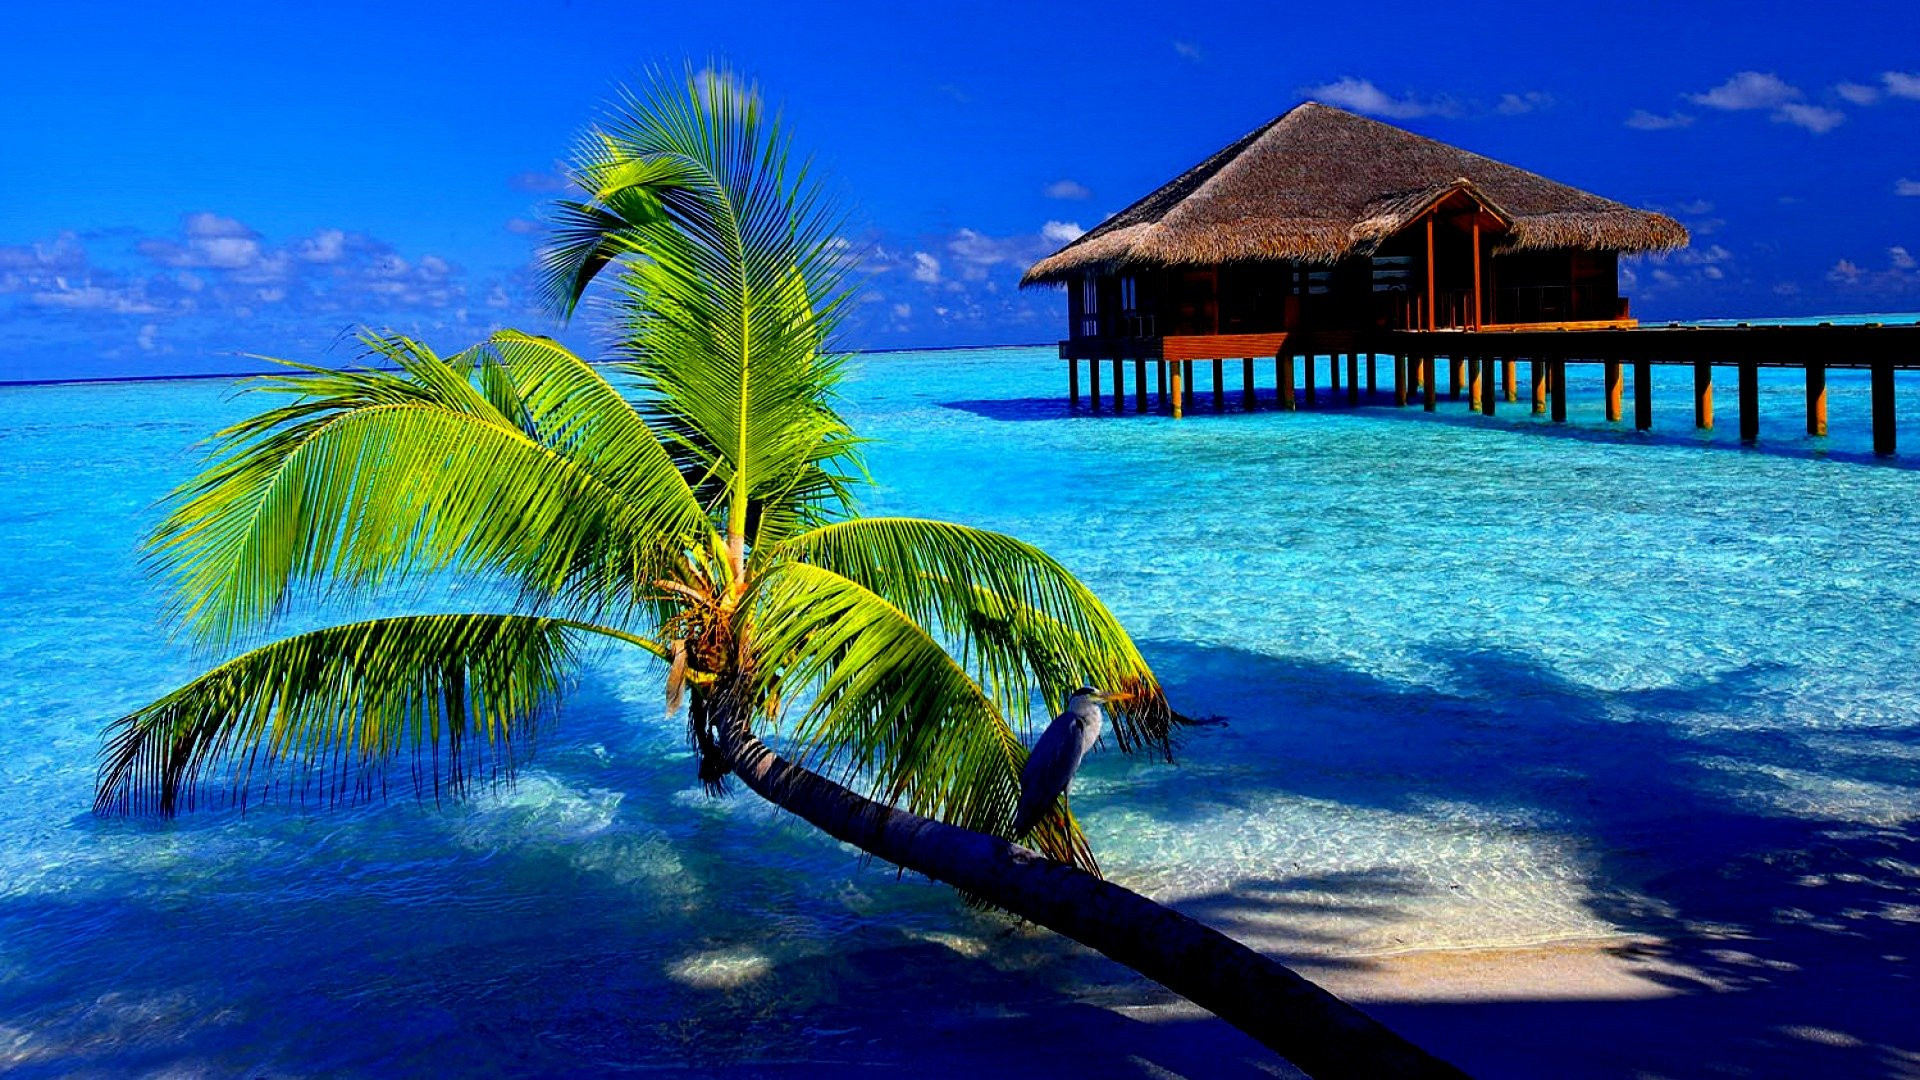 Tropical desktop wallpaper wallpapersafari for Wallpaper wallpaper wallpaper